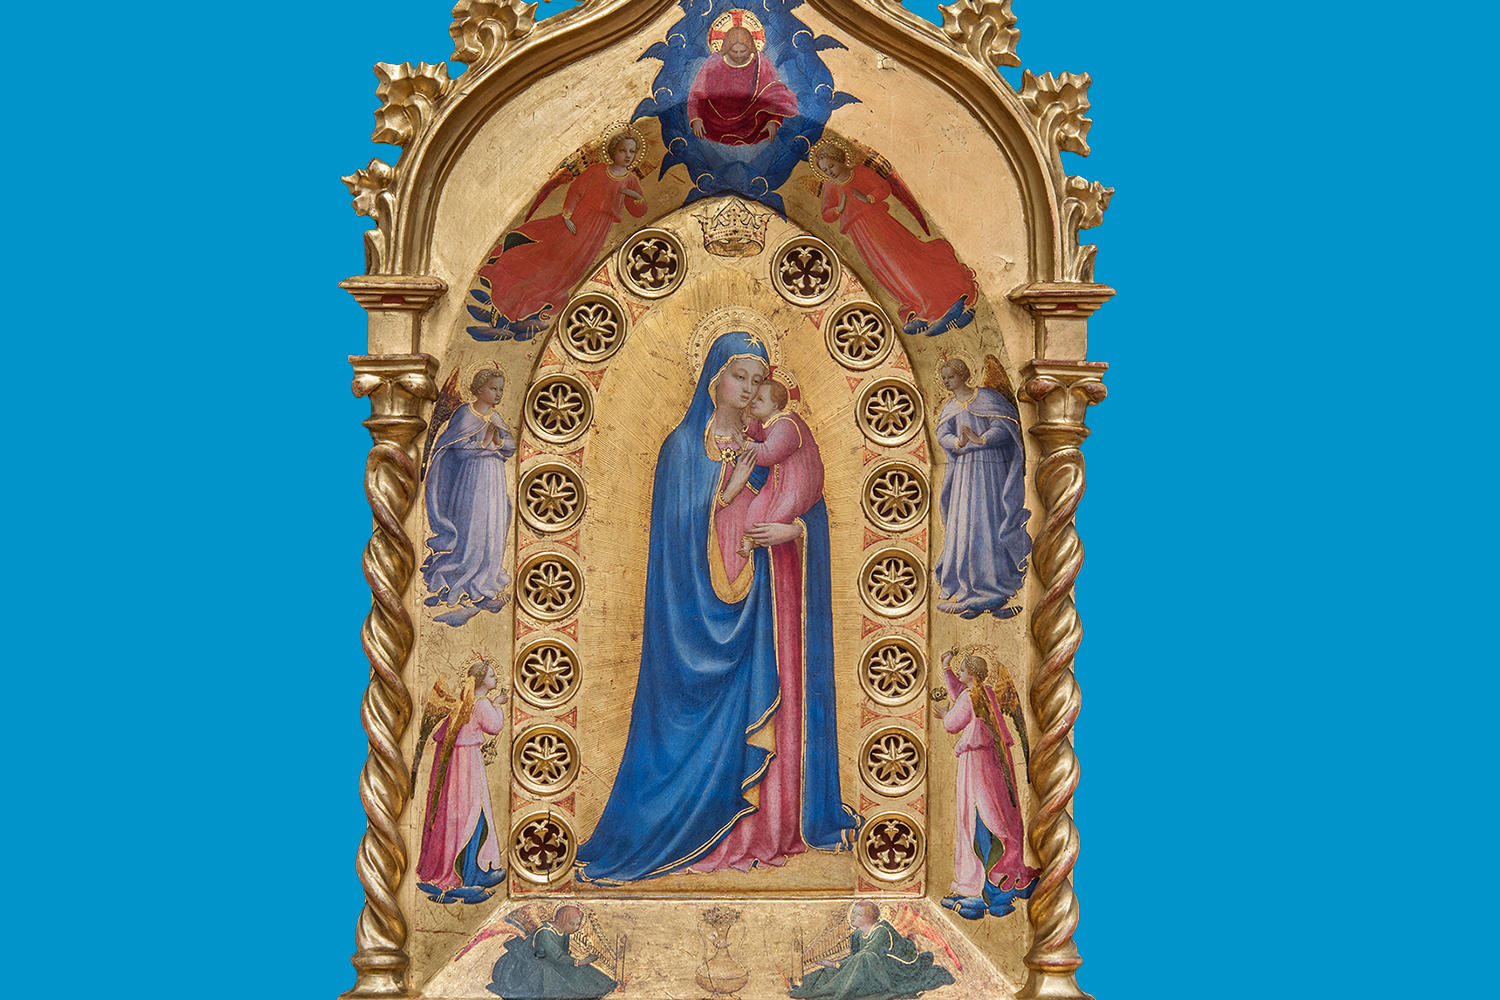 Fra Angelico (Italian, about 1400 - 1455), The Madonna della Stella, 1424-1434. Tempera with oil glazes and gold on panel, 87 x 51.8 cm (34 1/4 x 20 3/8 in.) Museo di San Marco, Florence – Polo Museale della Toscana